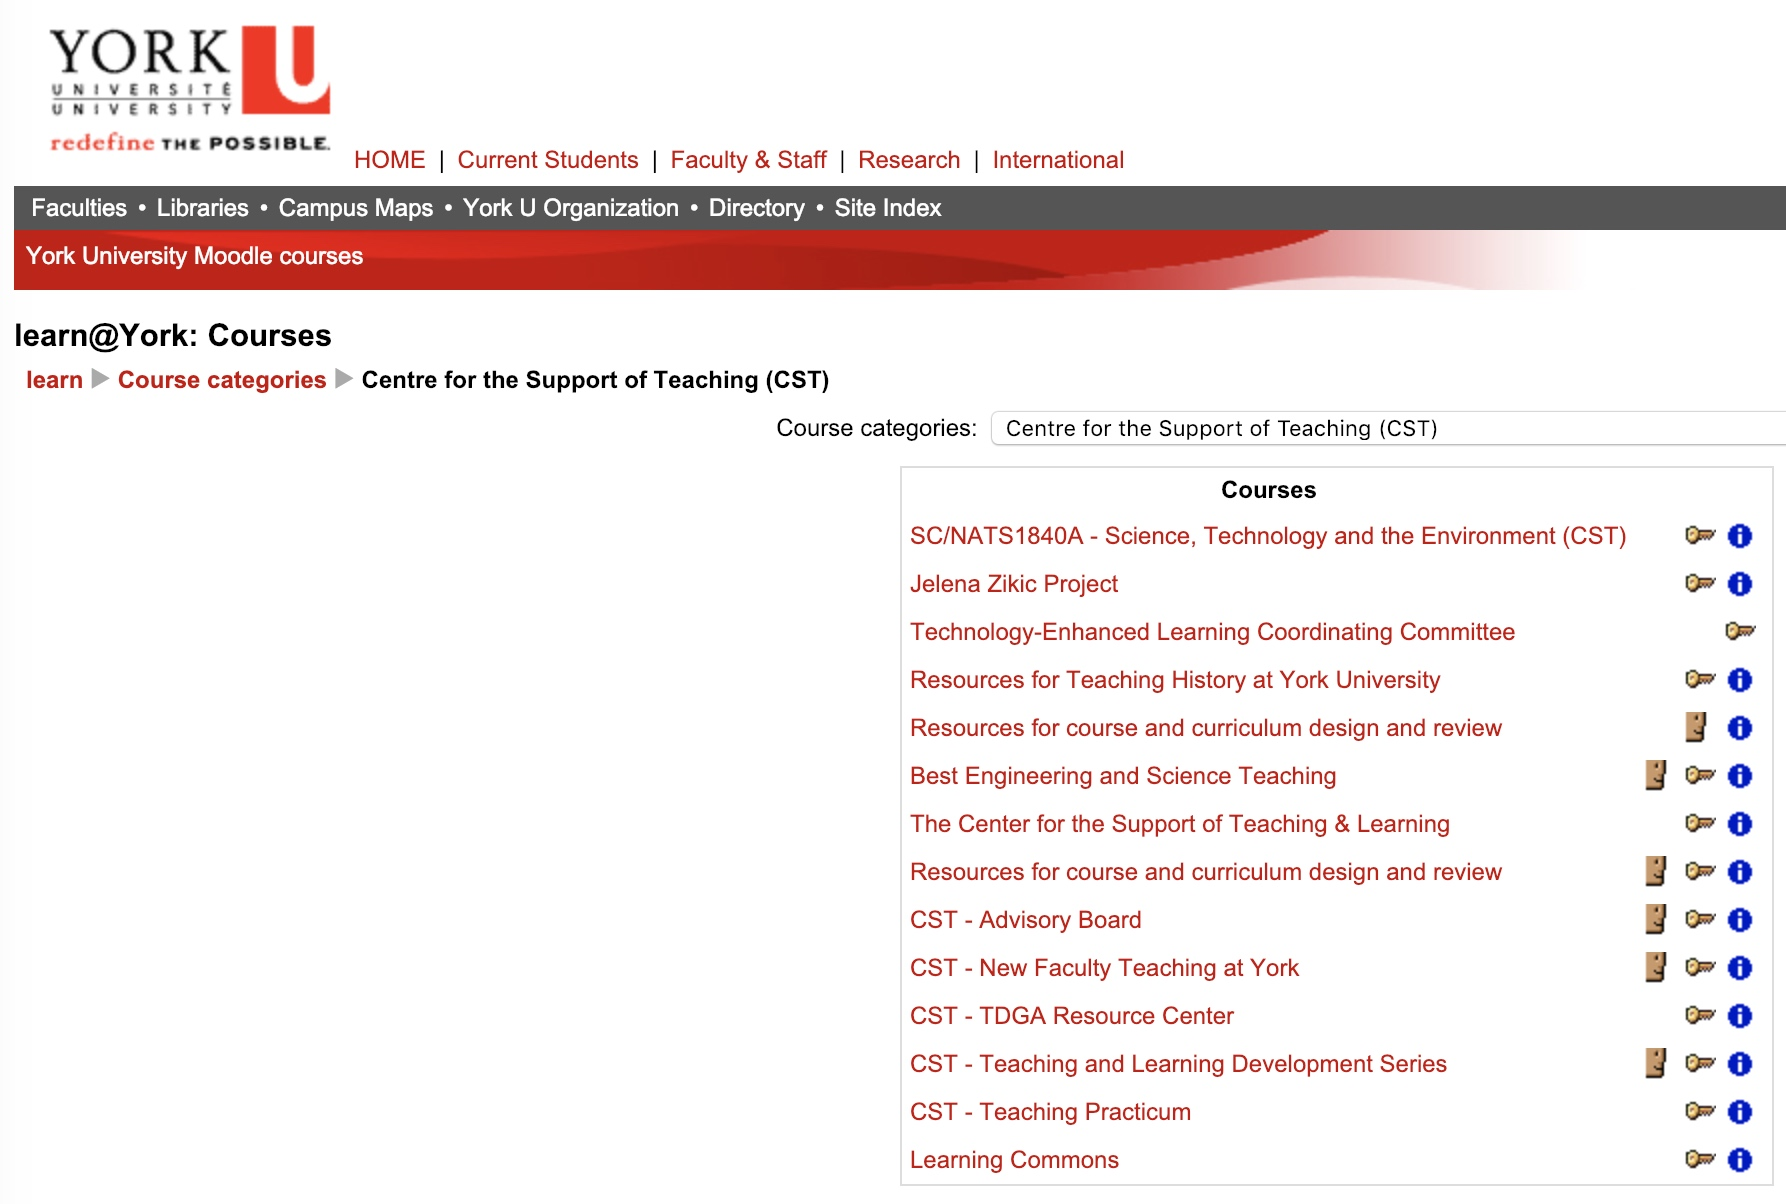 Some York University Centre for Support of Teaching Courses